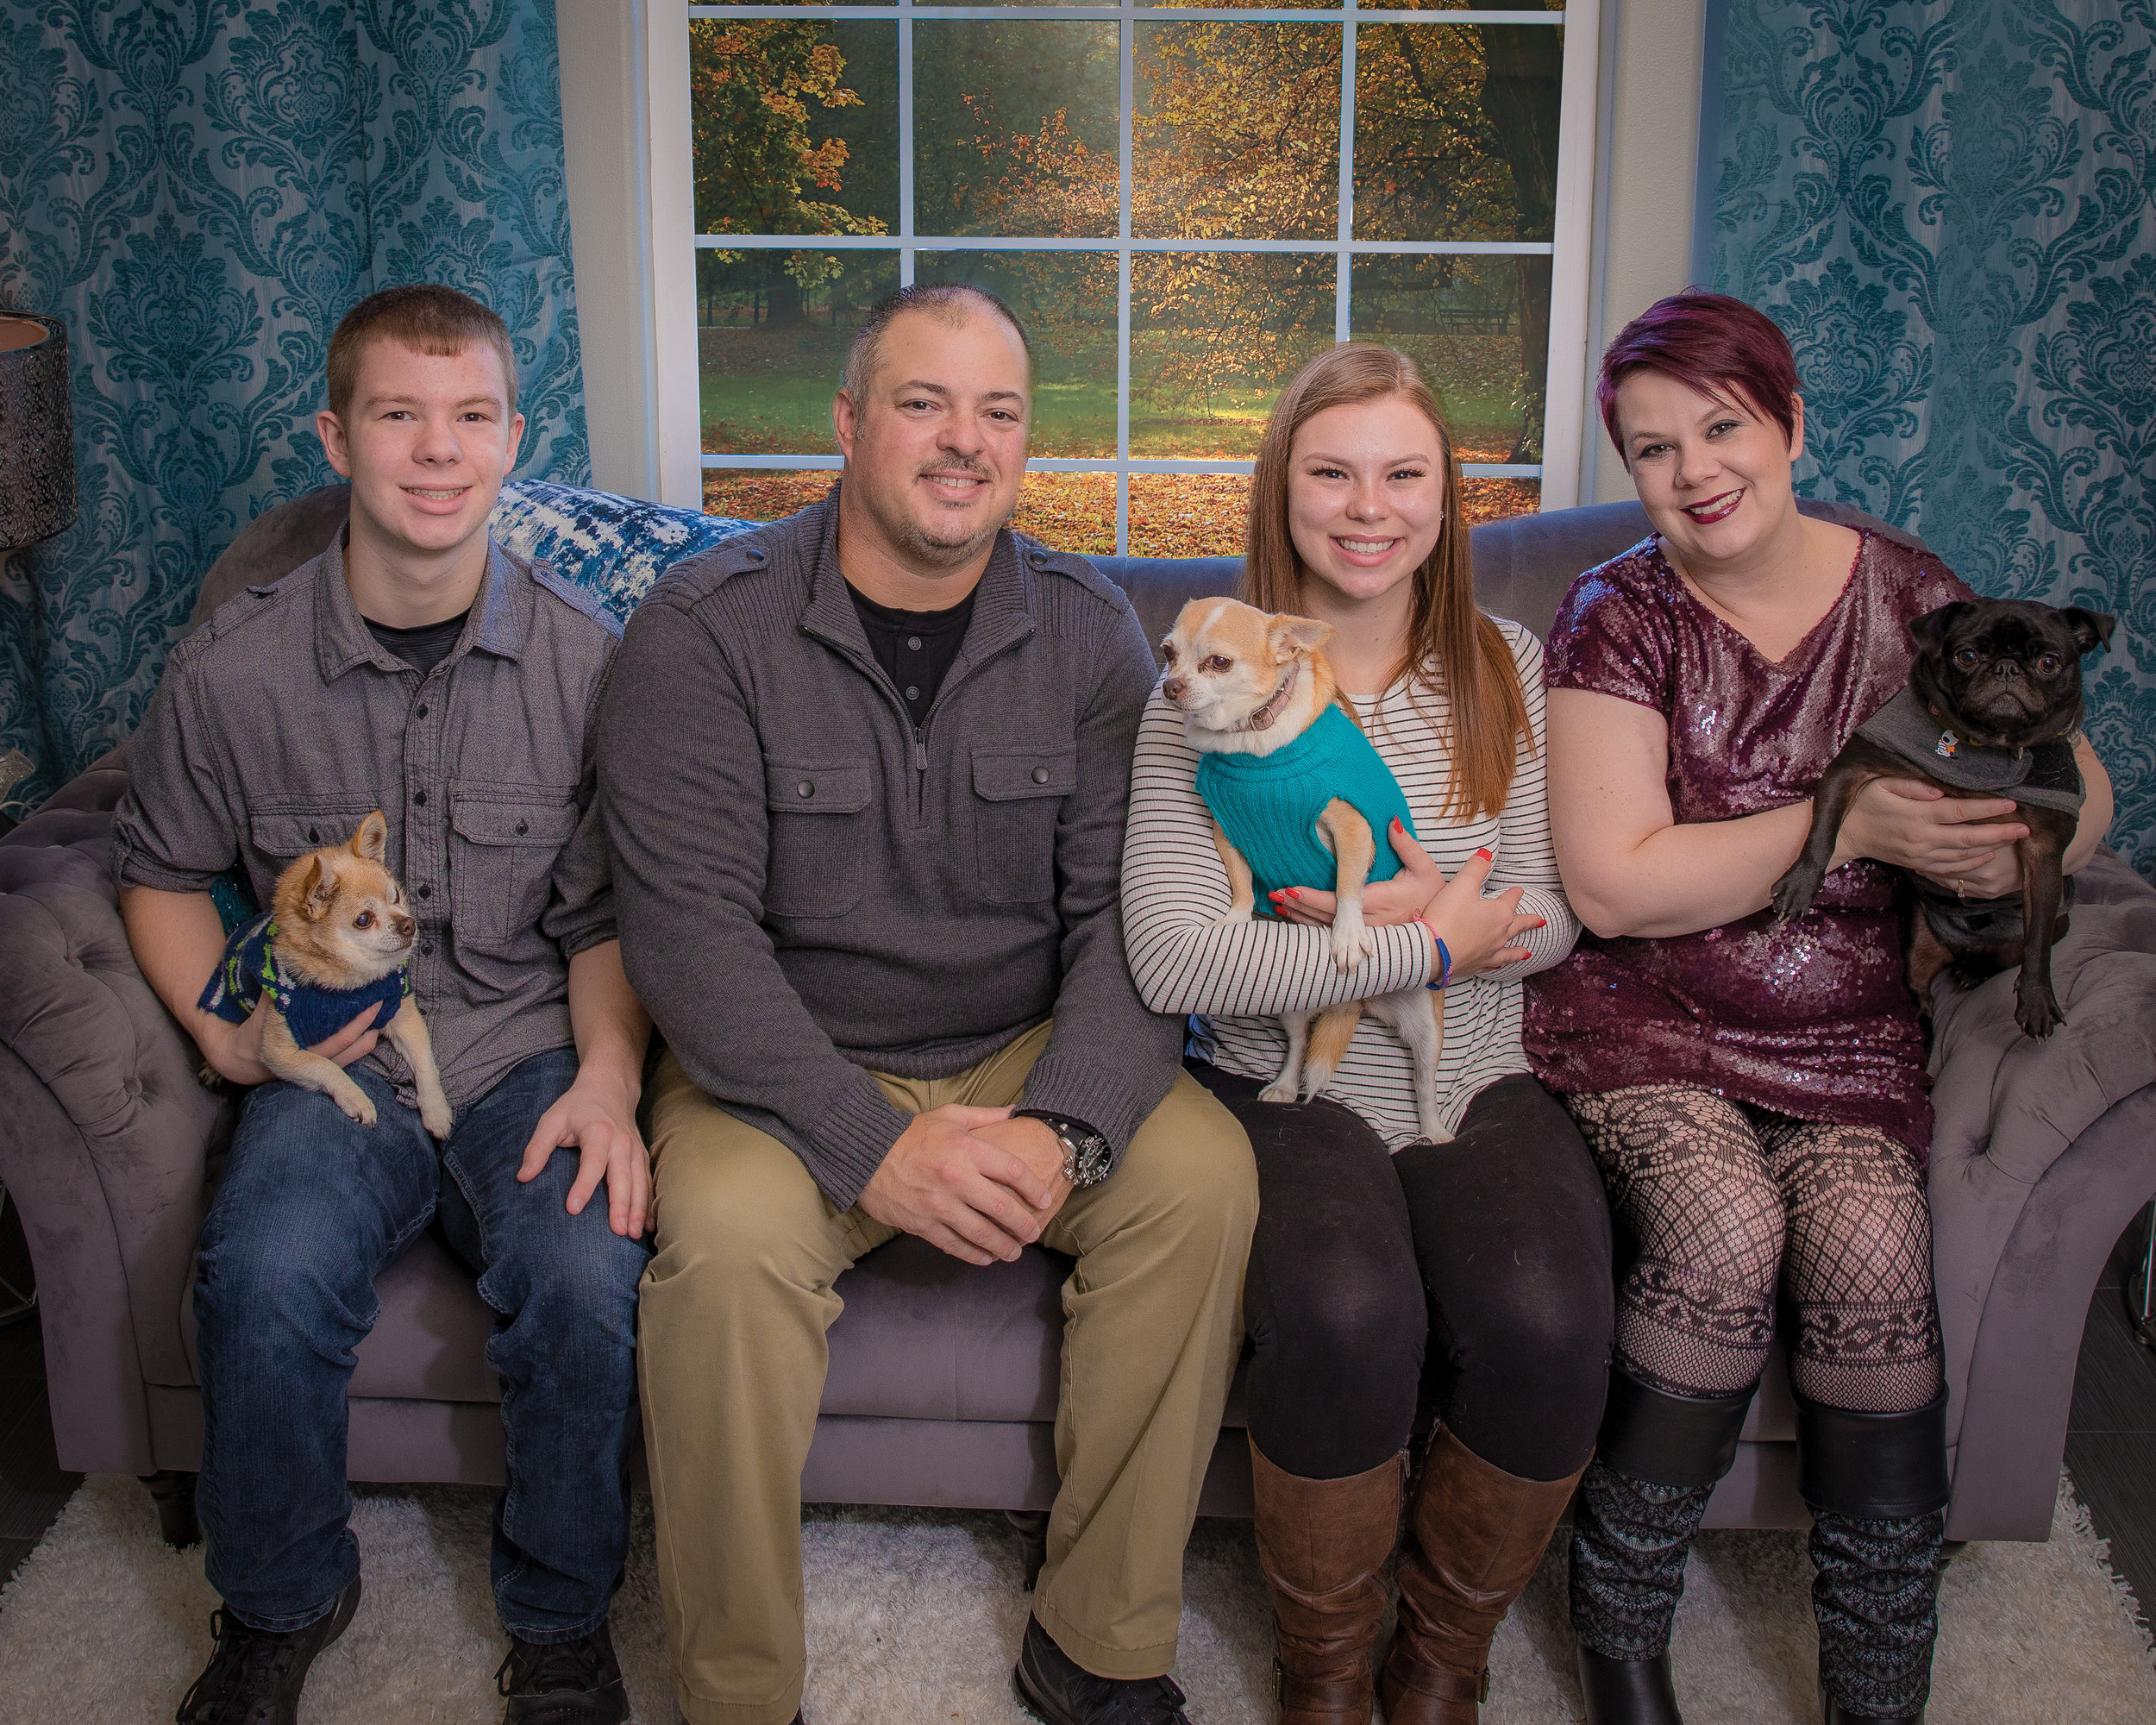 My Family - photo by Irene Beckham Photography